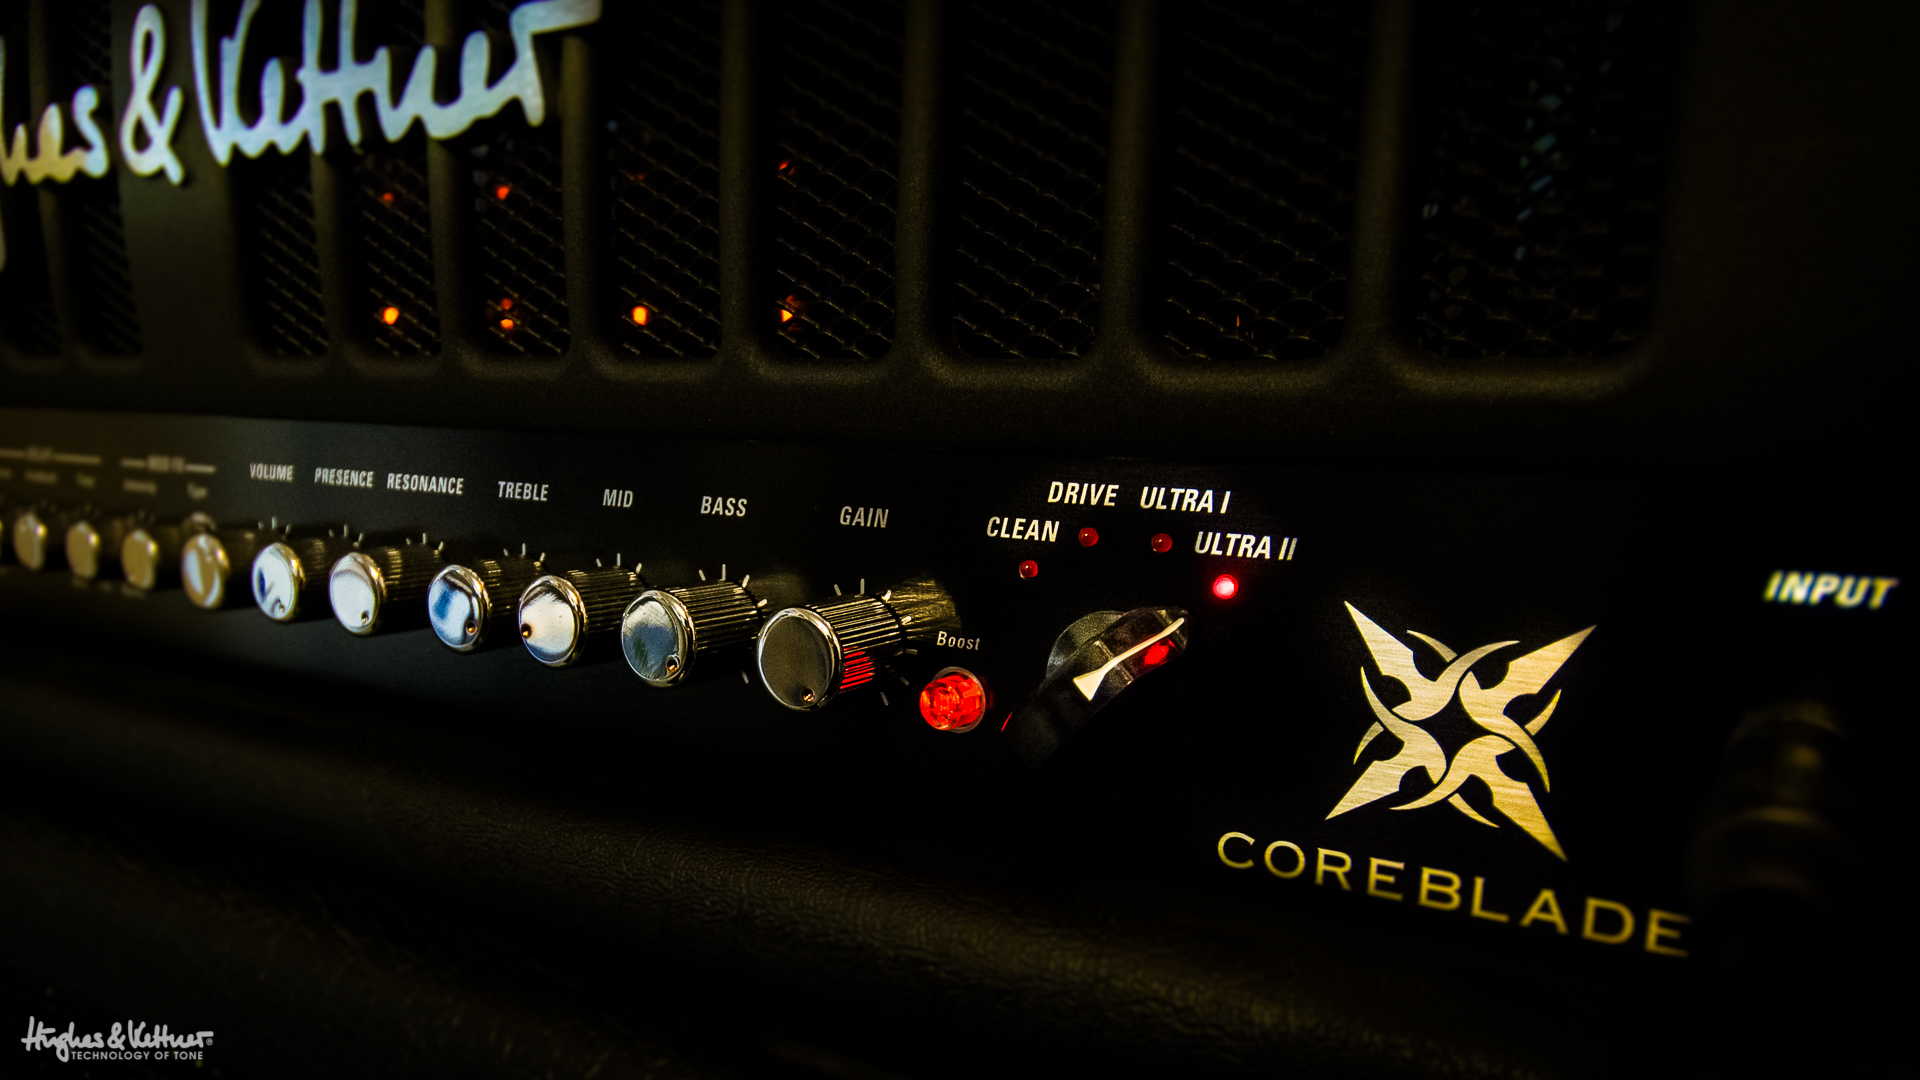 Ac Dc And The No Gain Pain Secret For Great Guitar Tone Hughes Wiring Blog Diagrams Tips Active Big Amp All Way Up Boost Engaged Dirtiest Channel Selected